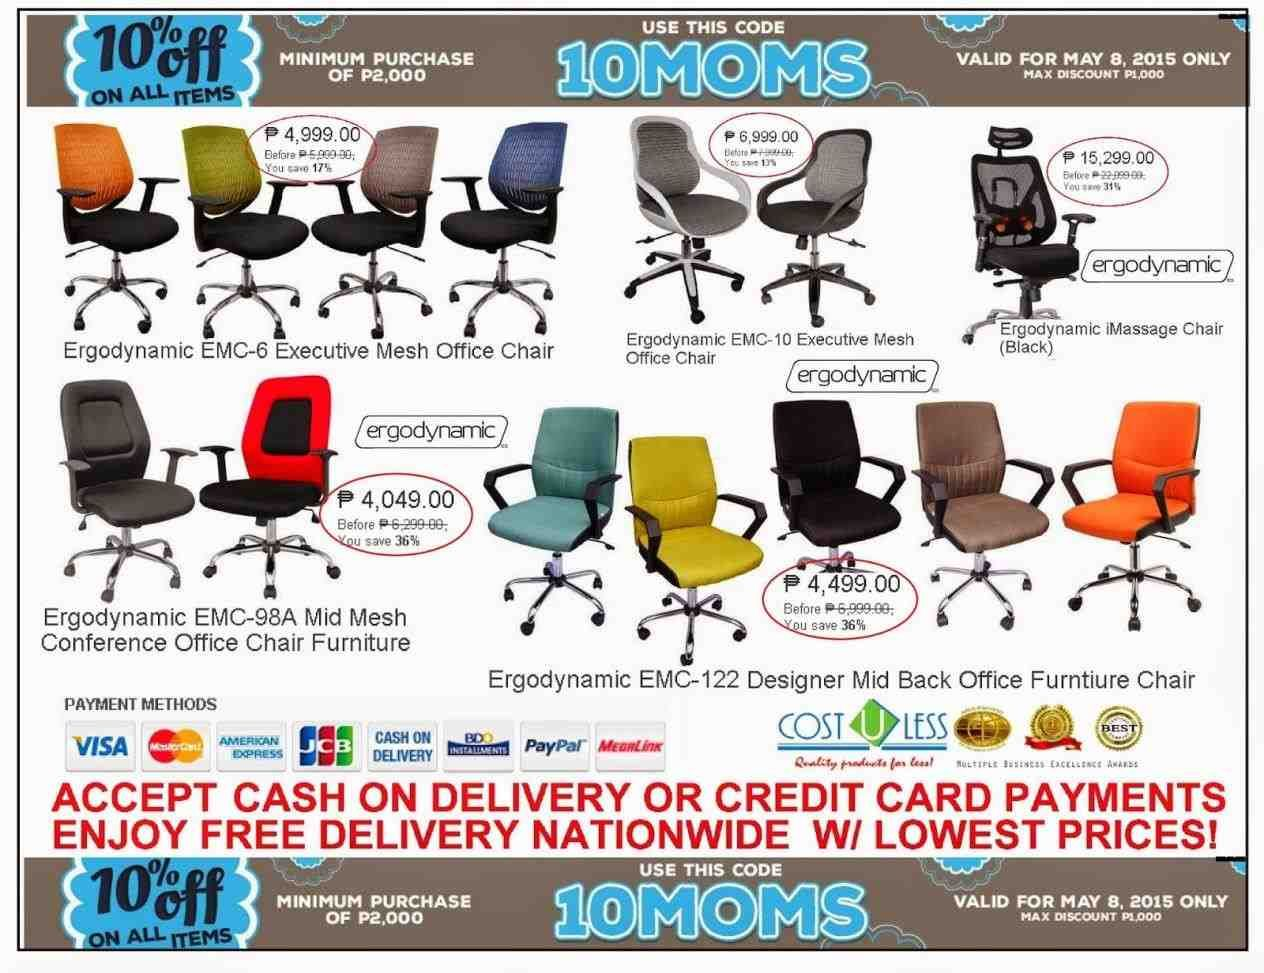 Cheap Office Chairs For Sale Philippines Office Desk Full Size Of Chair Dramatic Computer Gami Black Office Chair Office Chairs For Sale Cheap Office Chairs